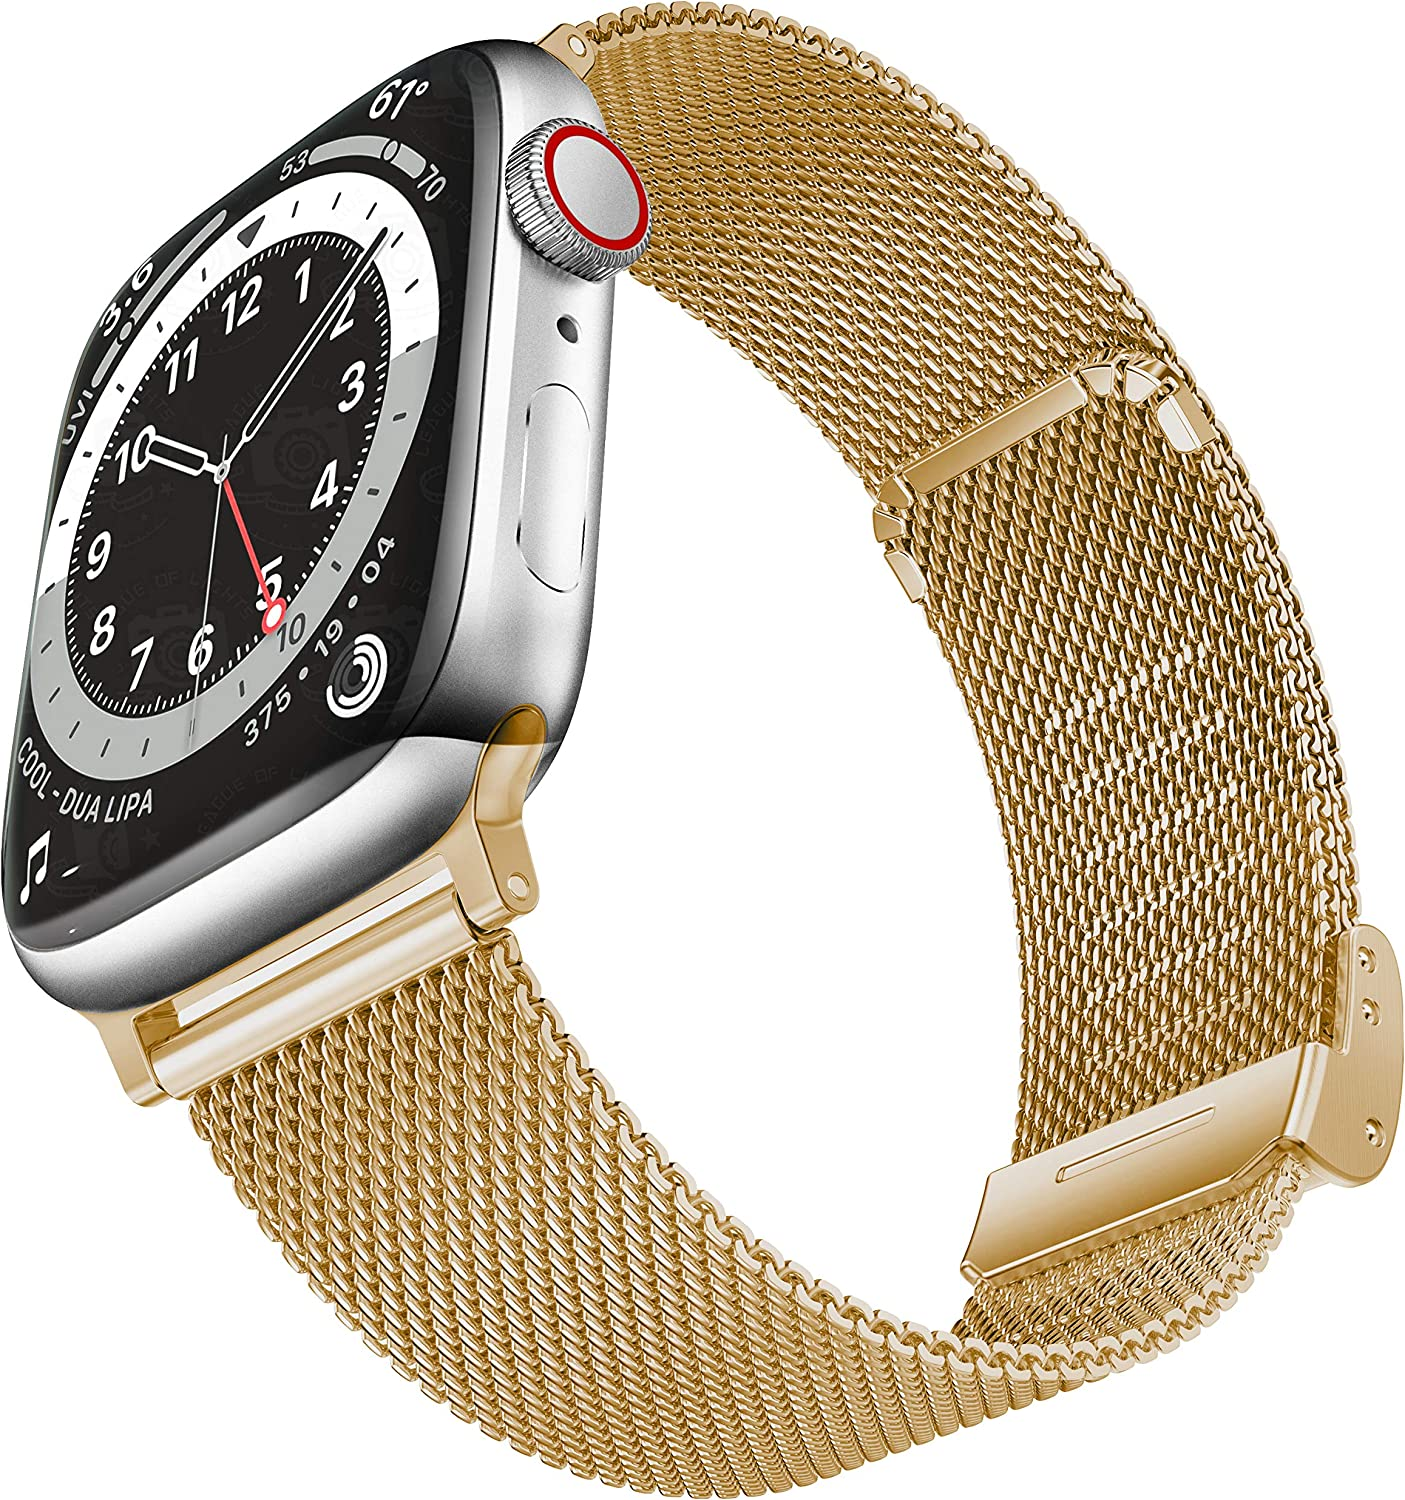 Geoumy Bands Compatible with Apple Watch Band 38mm 40mm, Stainless Steel Milanese Mesh Loop Replacement Men Women Strap for iWatch Series SE/6/5/4/3/2/1,Light Gold